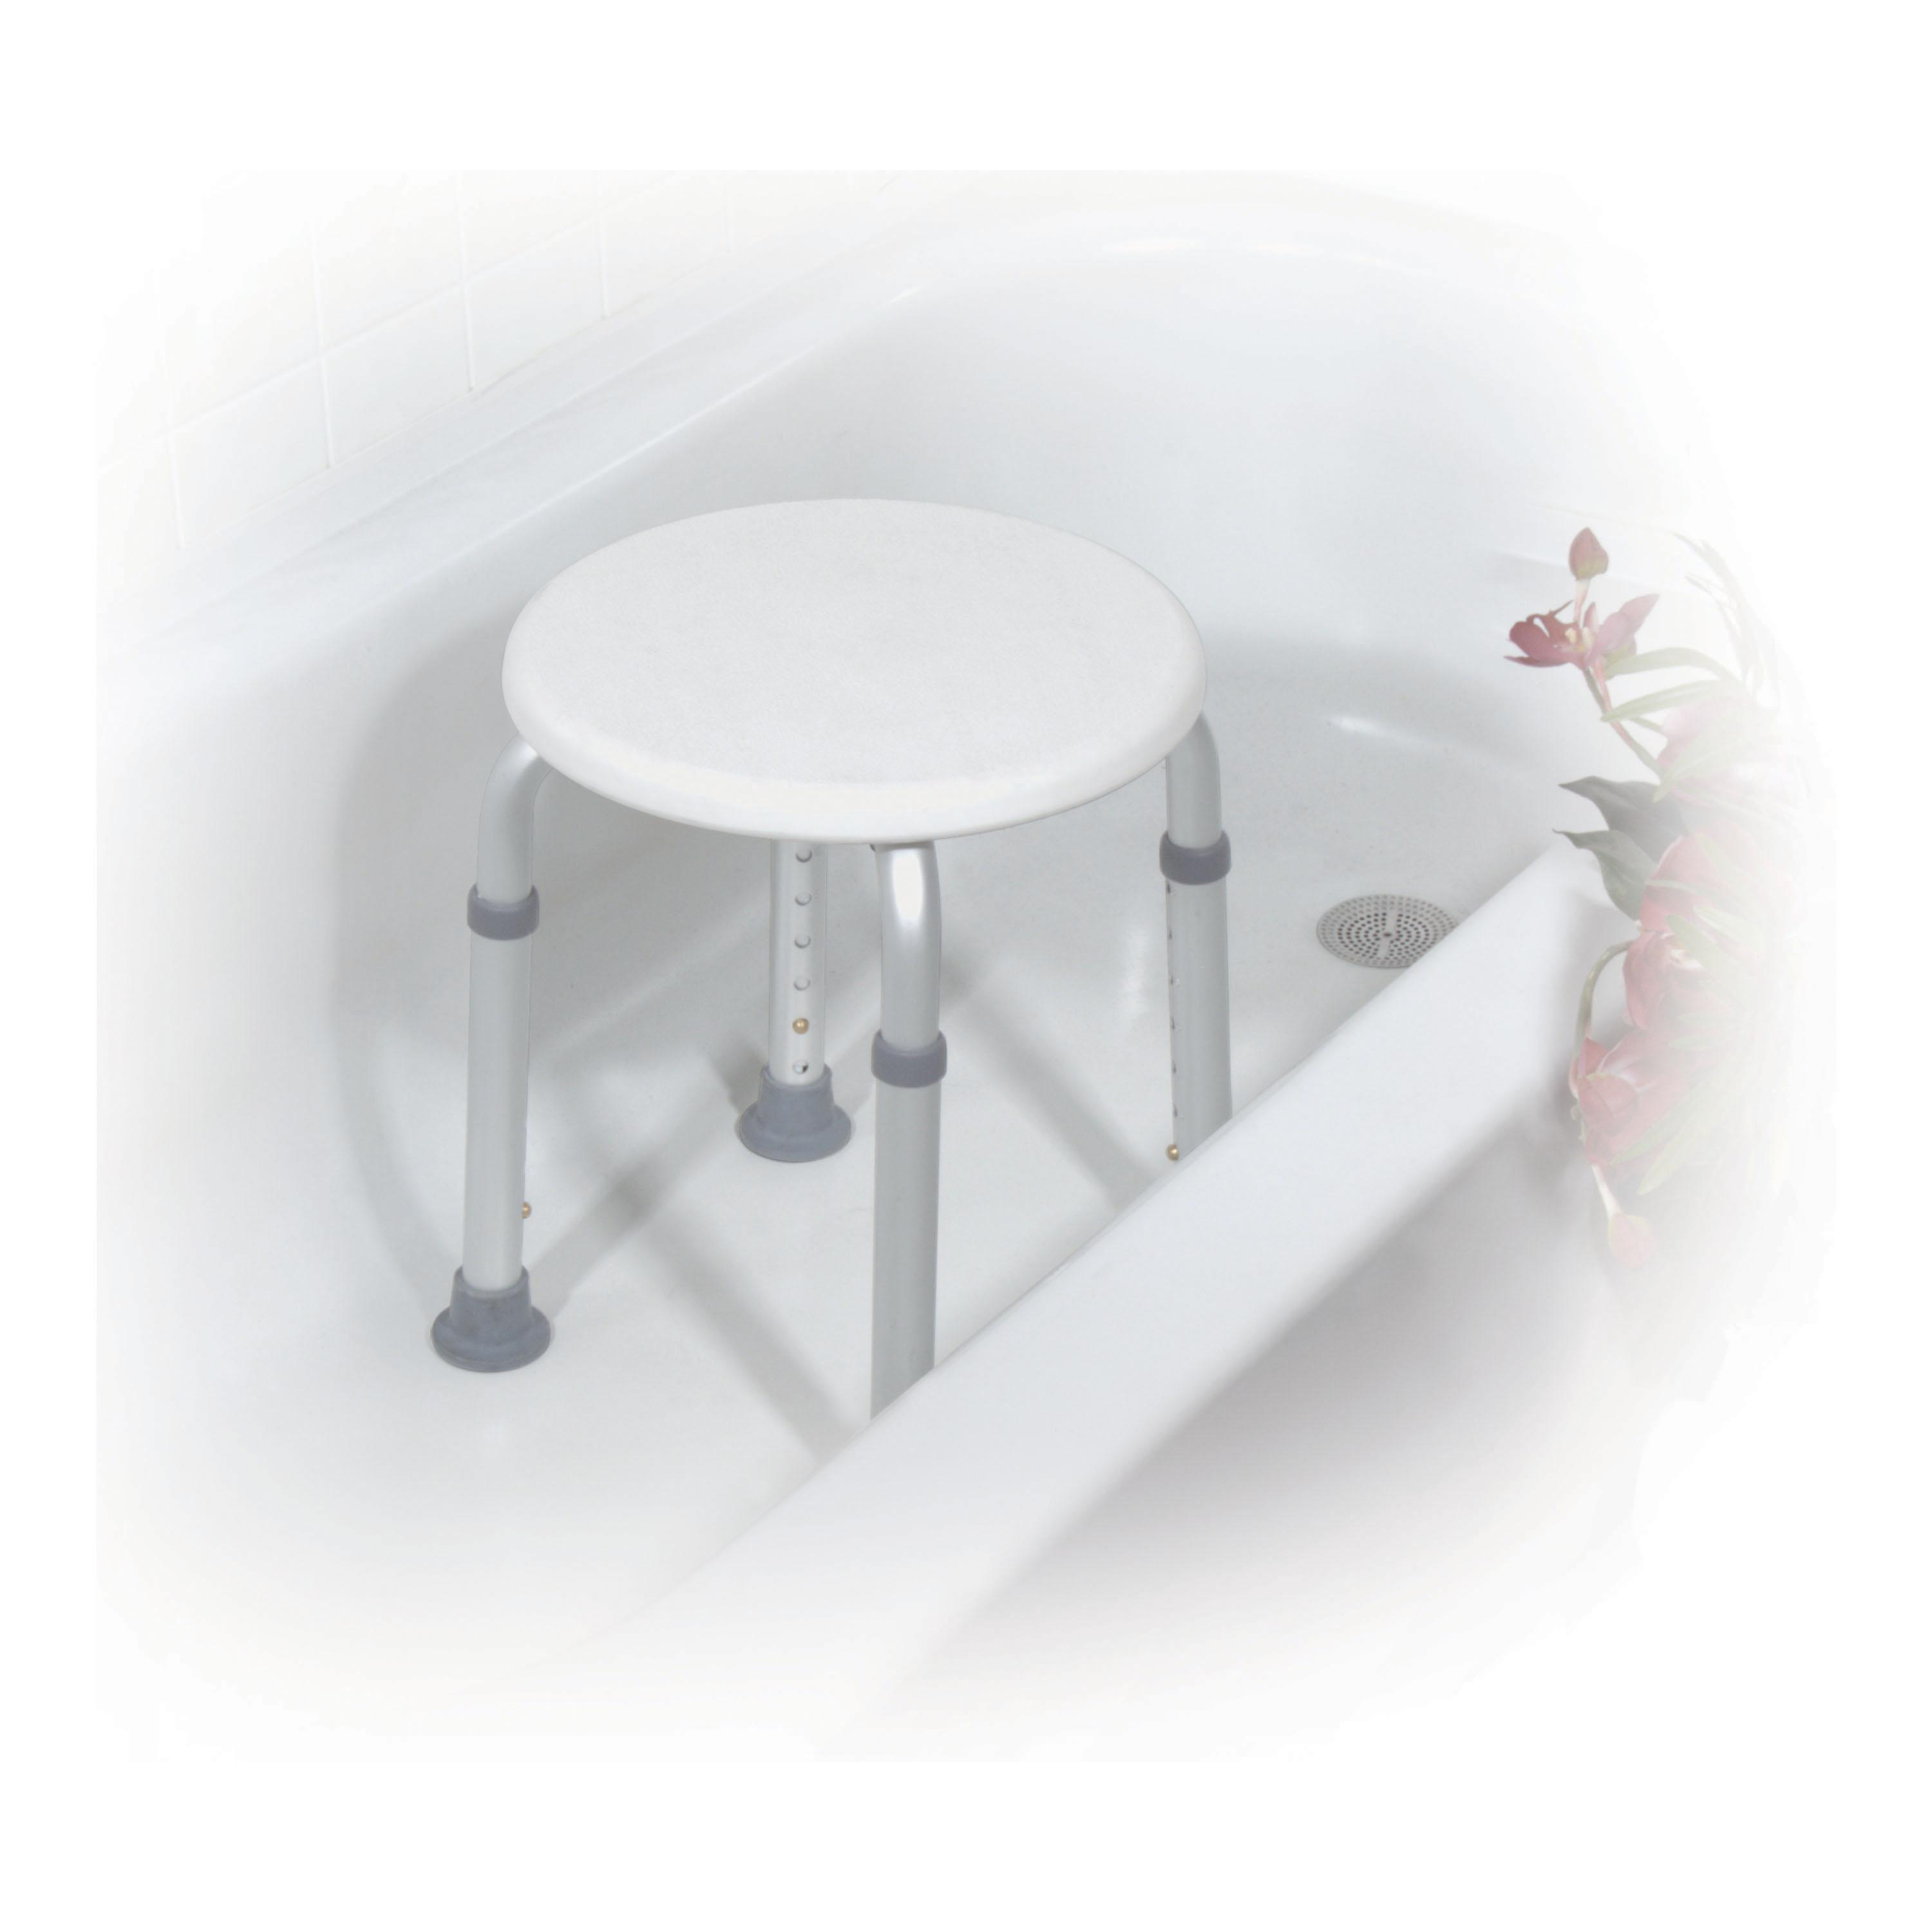 Etonnant The Adjustable Height Bath Stool Provides A Safe, Secure And Comforting  Bathing Experience.